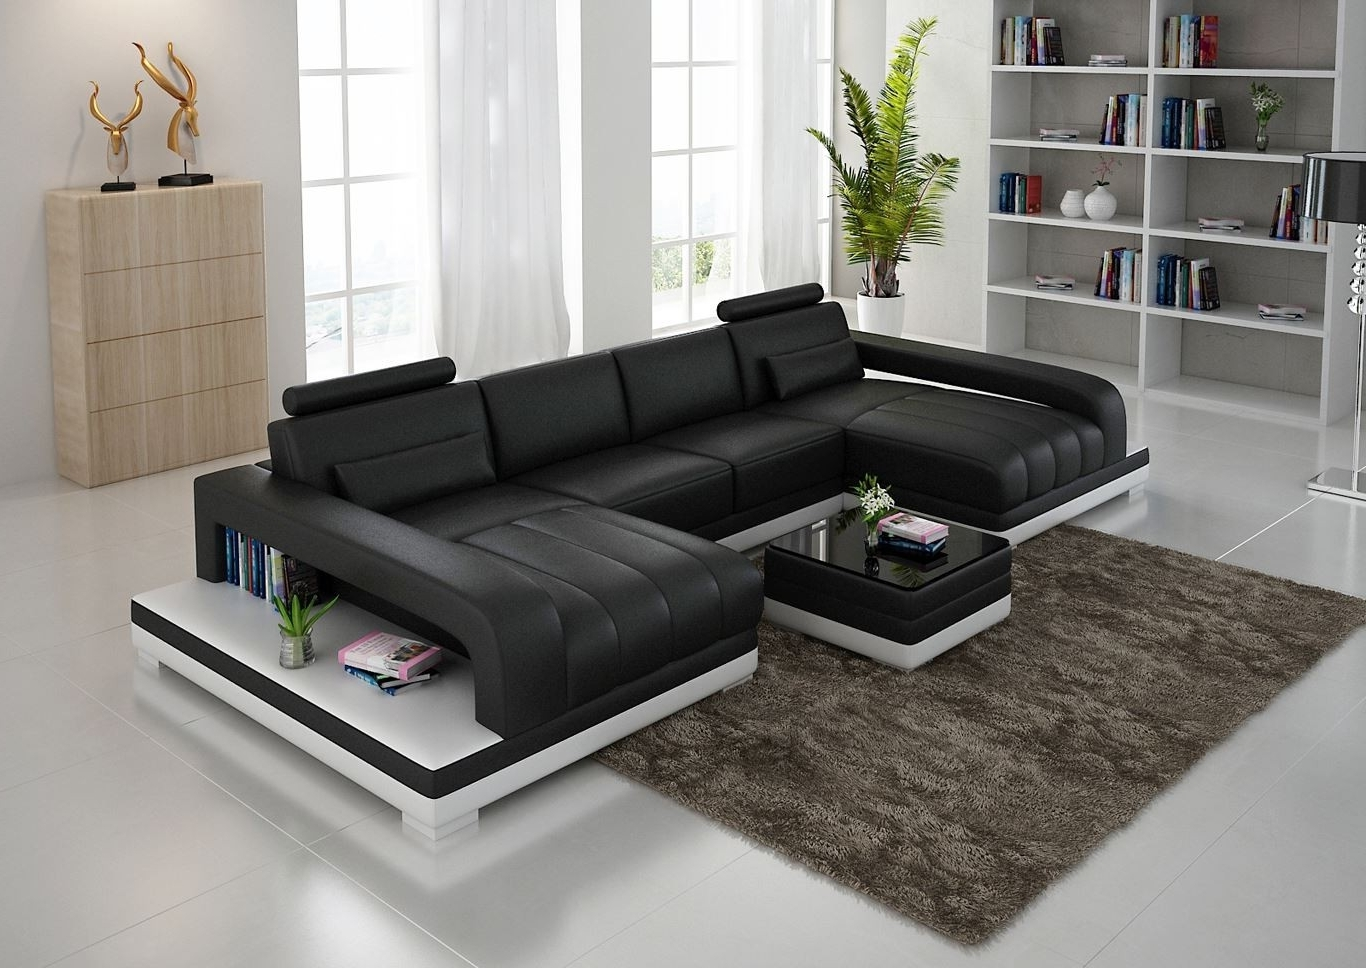 Latest Double Chaise Lounge Sofas Regarding Lounge Ii 2 Piece Left Arm Double Chaise Sectional Sofa Crate With (View 5 of 15)